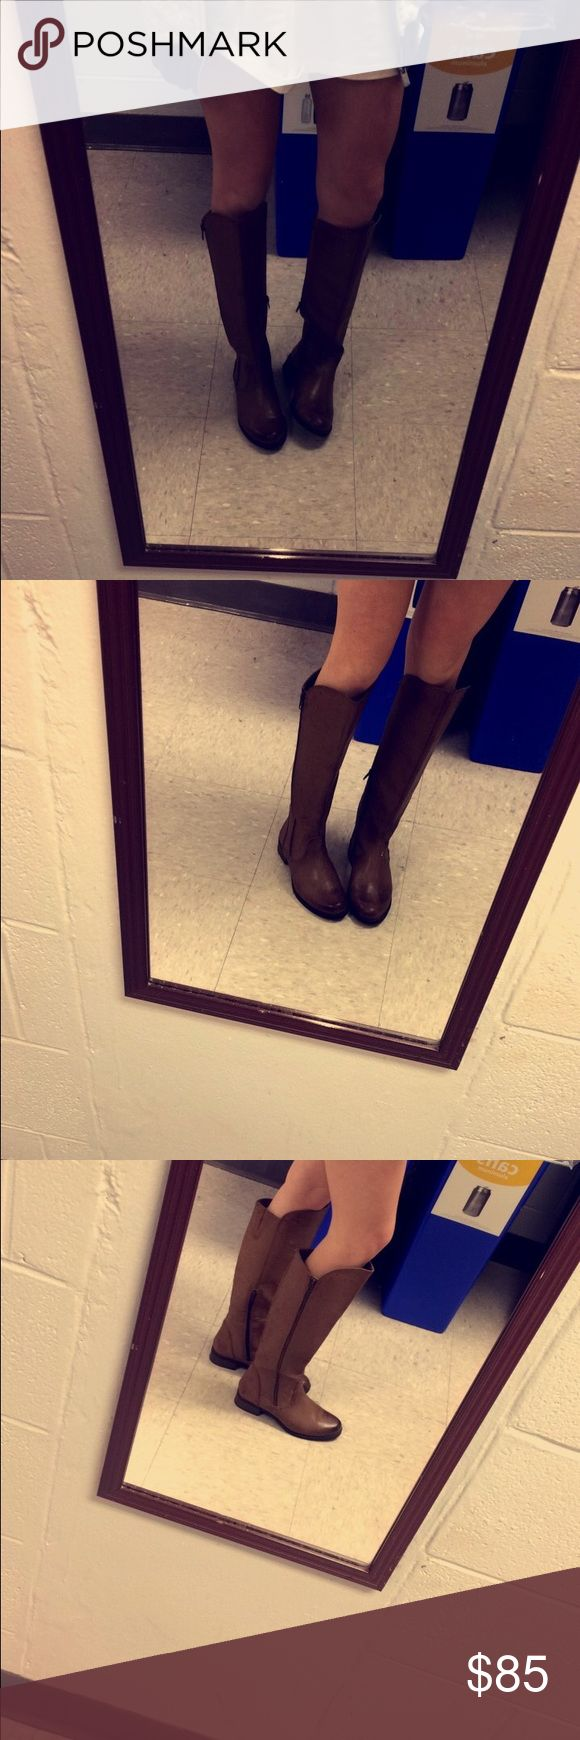 Brown leather Knee high boots Never worn CASSI boots Shoes